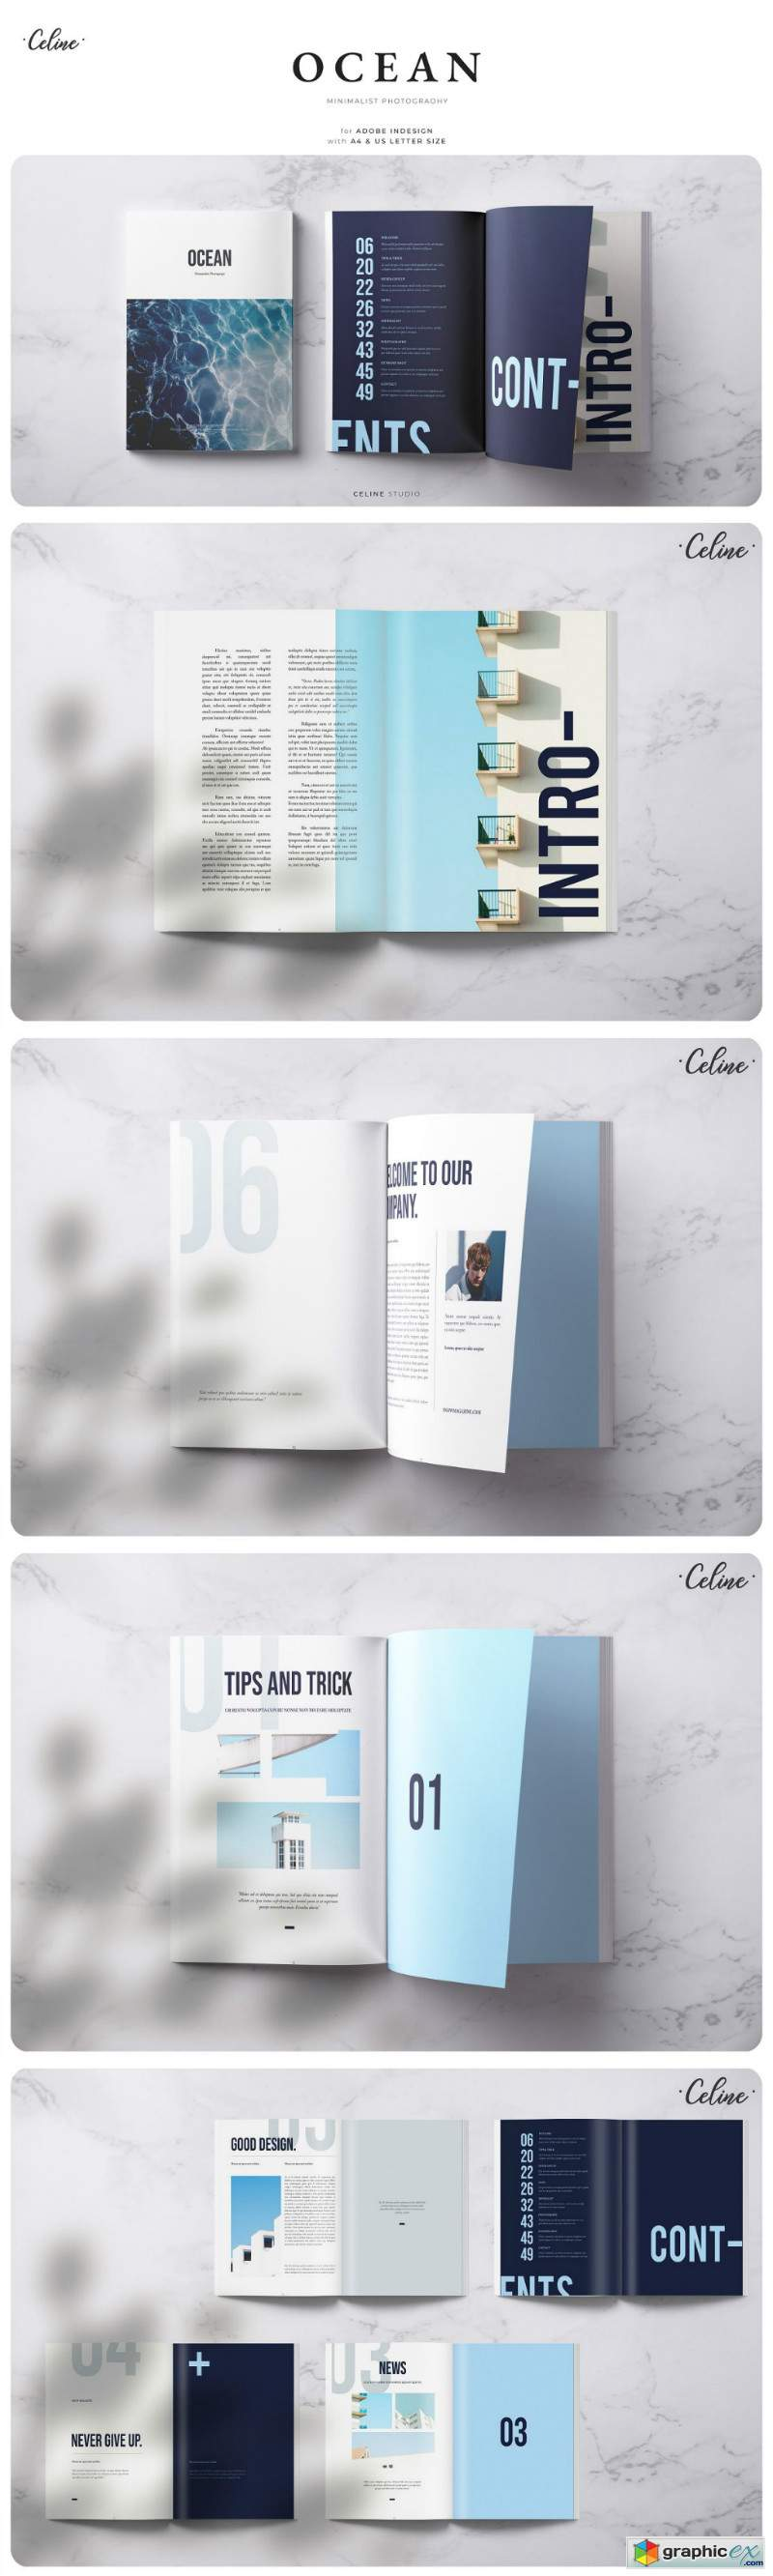 OCEAN Lookbook & Magazine Template